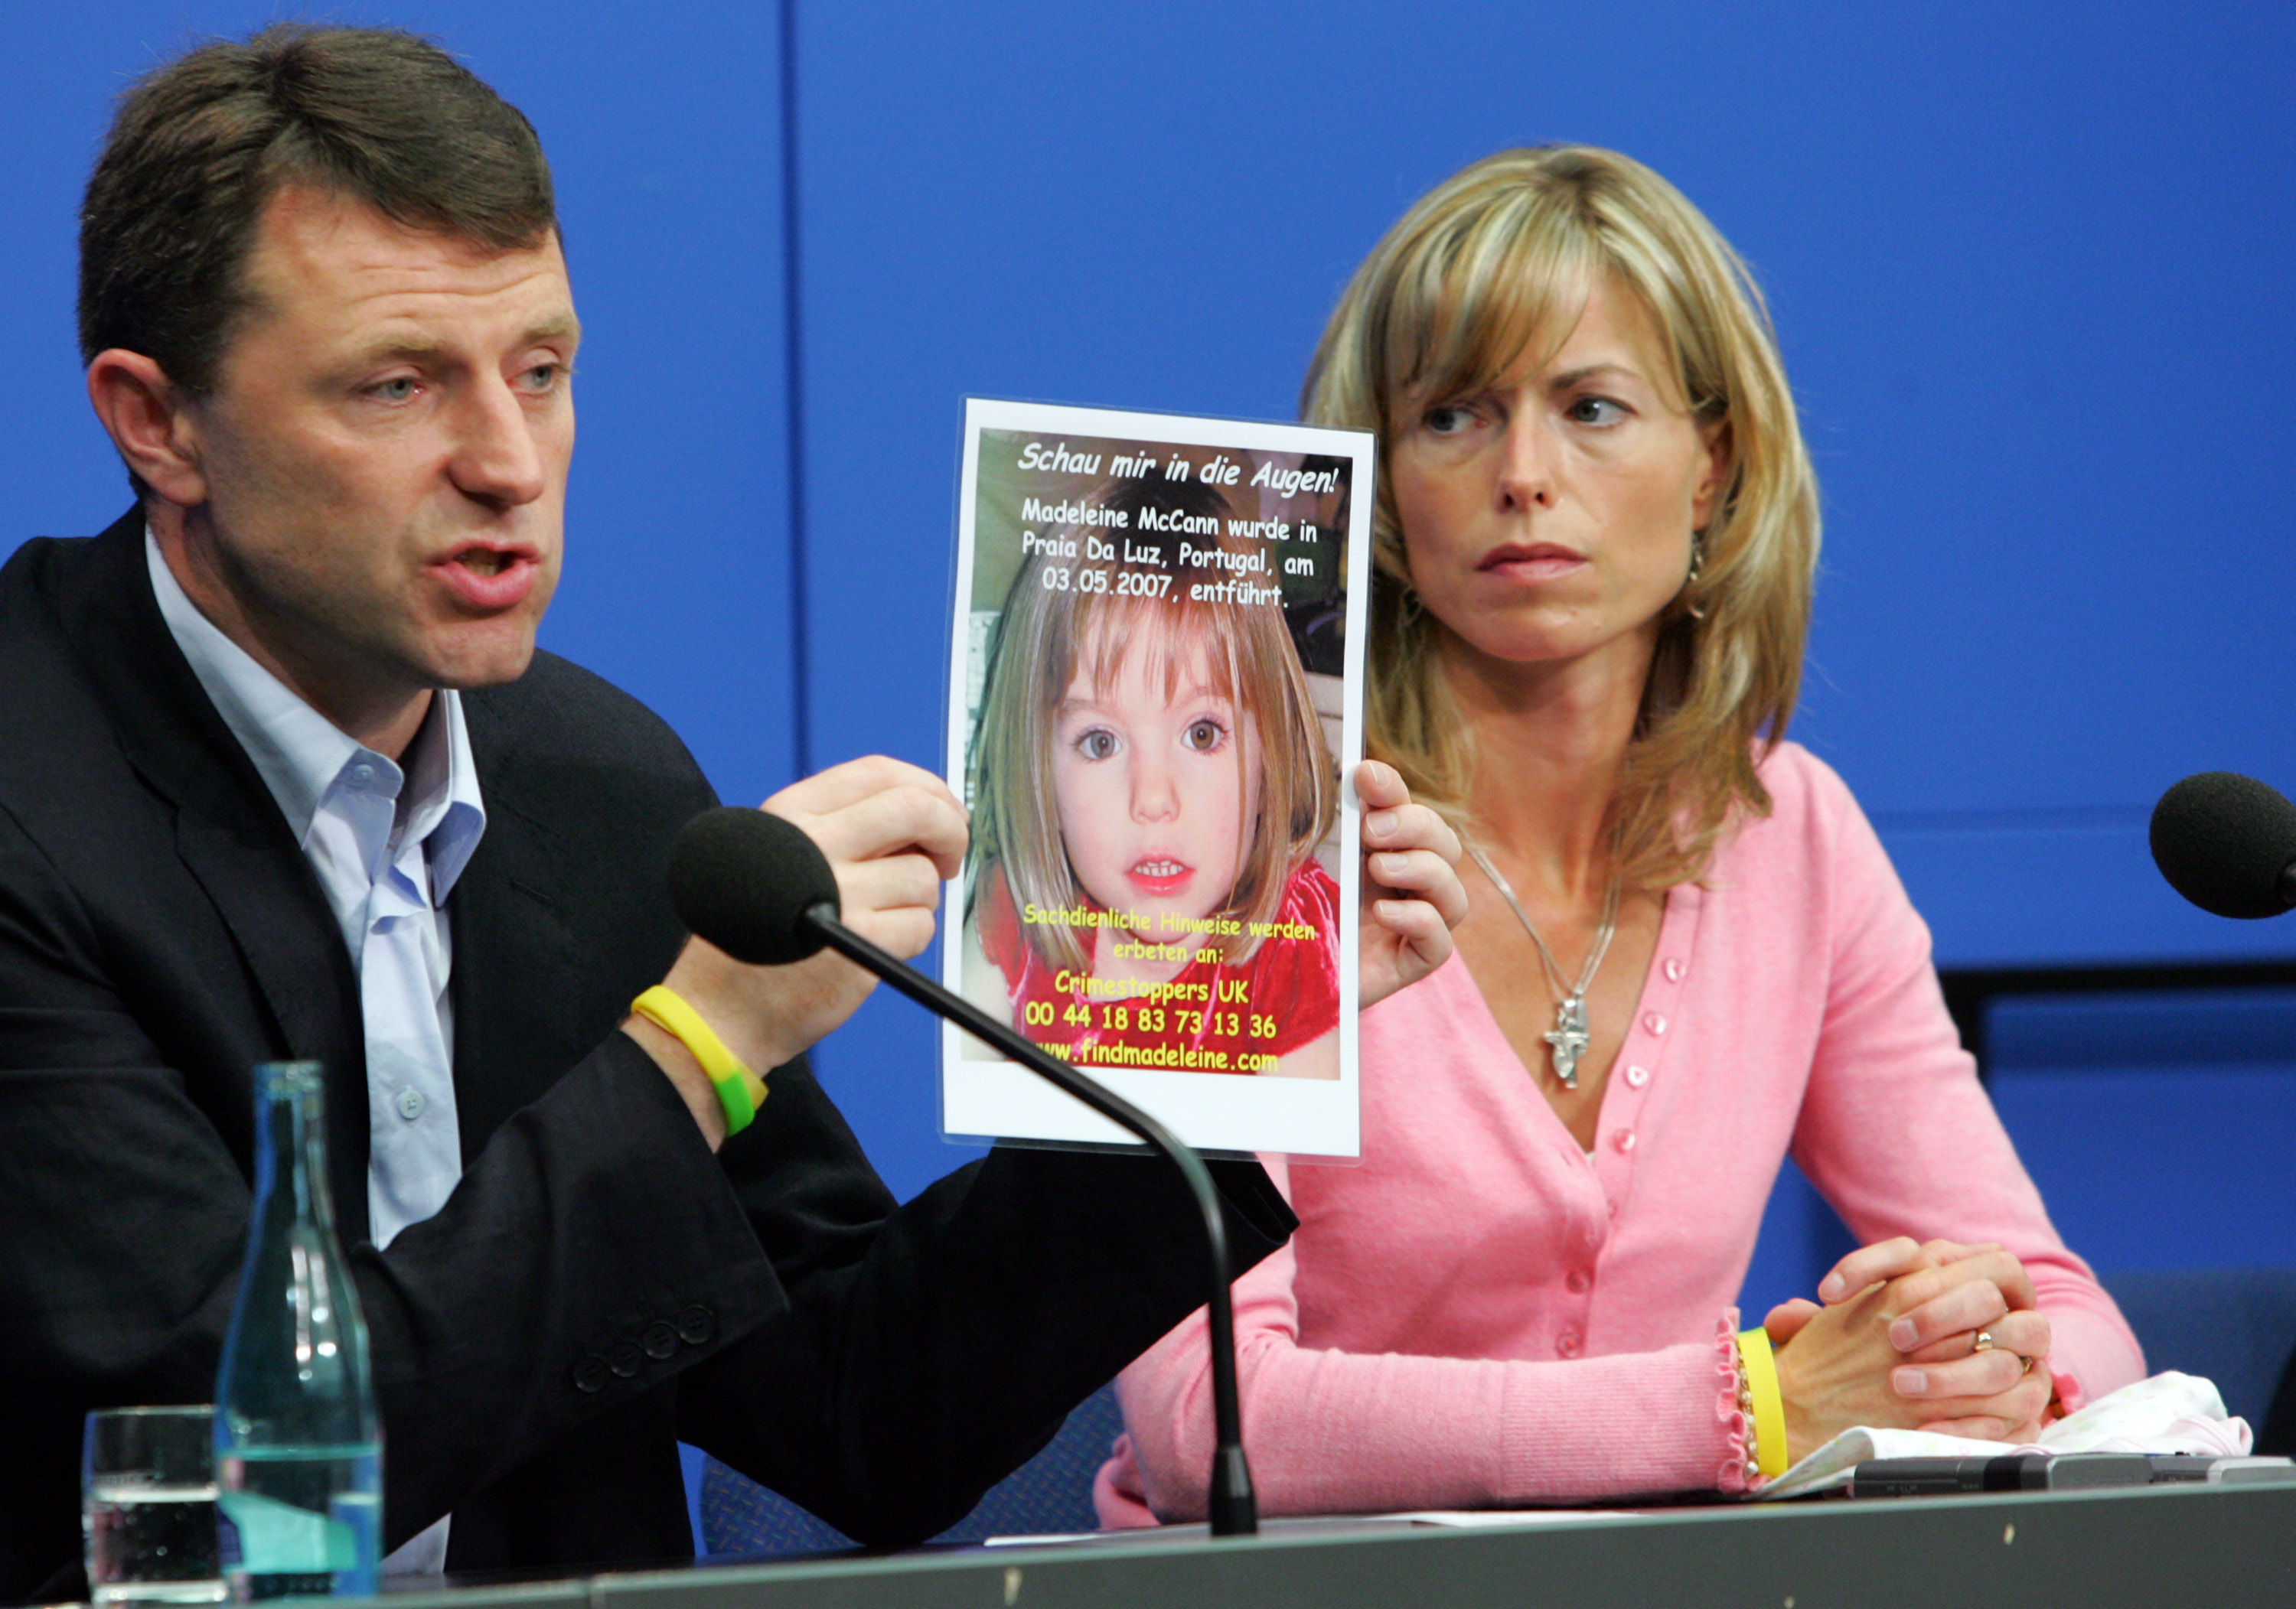 Kate and Gerry McCann, the parents of the missing 4-year-old British girl Madeleine McCann, display a poster of their missing daughter during a press conference on June 6, 2007 in Berlin, Germany. Kate and her husband Gerry are in Berlin to spread the word in the search for their missing duaghter Madeleine who disappeared from their holiday apartment in Praia da Luz, Portugal on May 3, 2007.